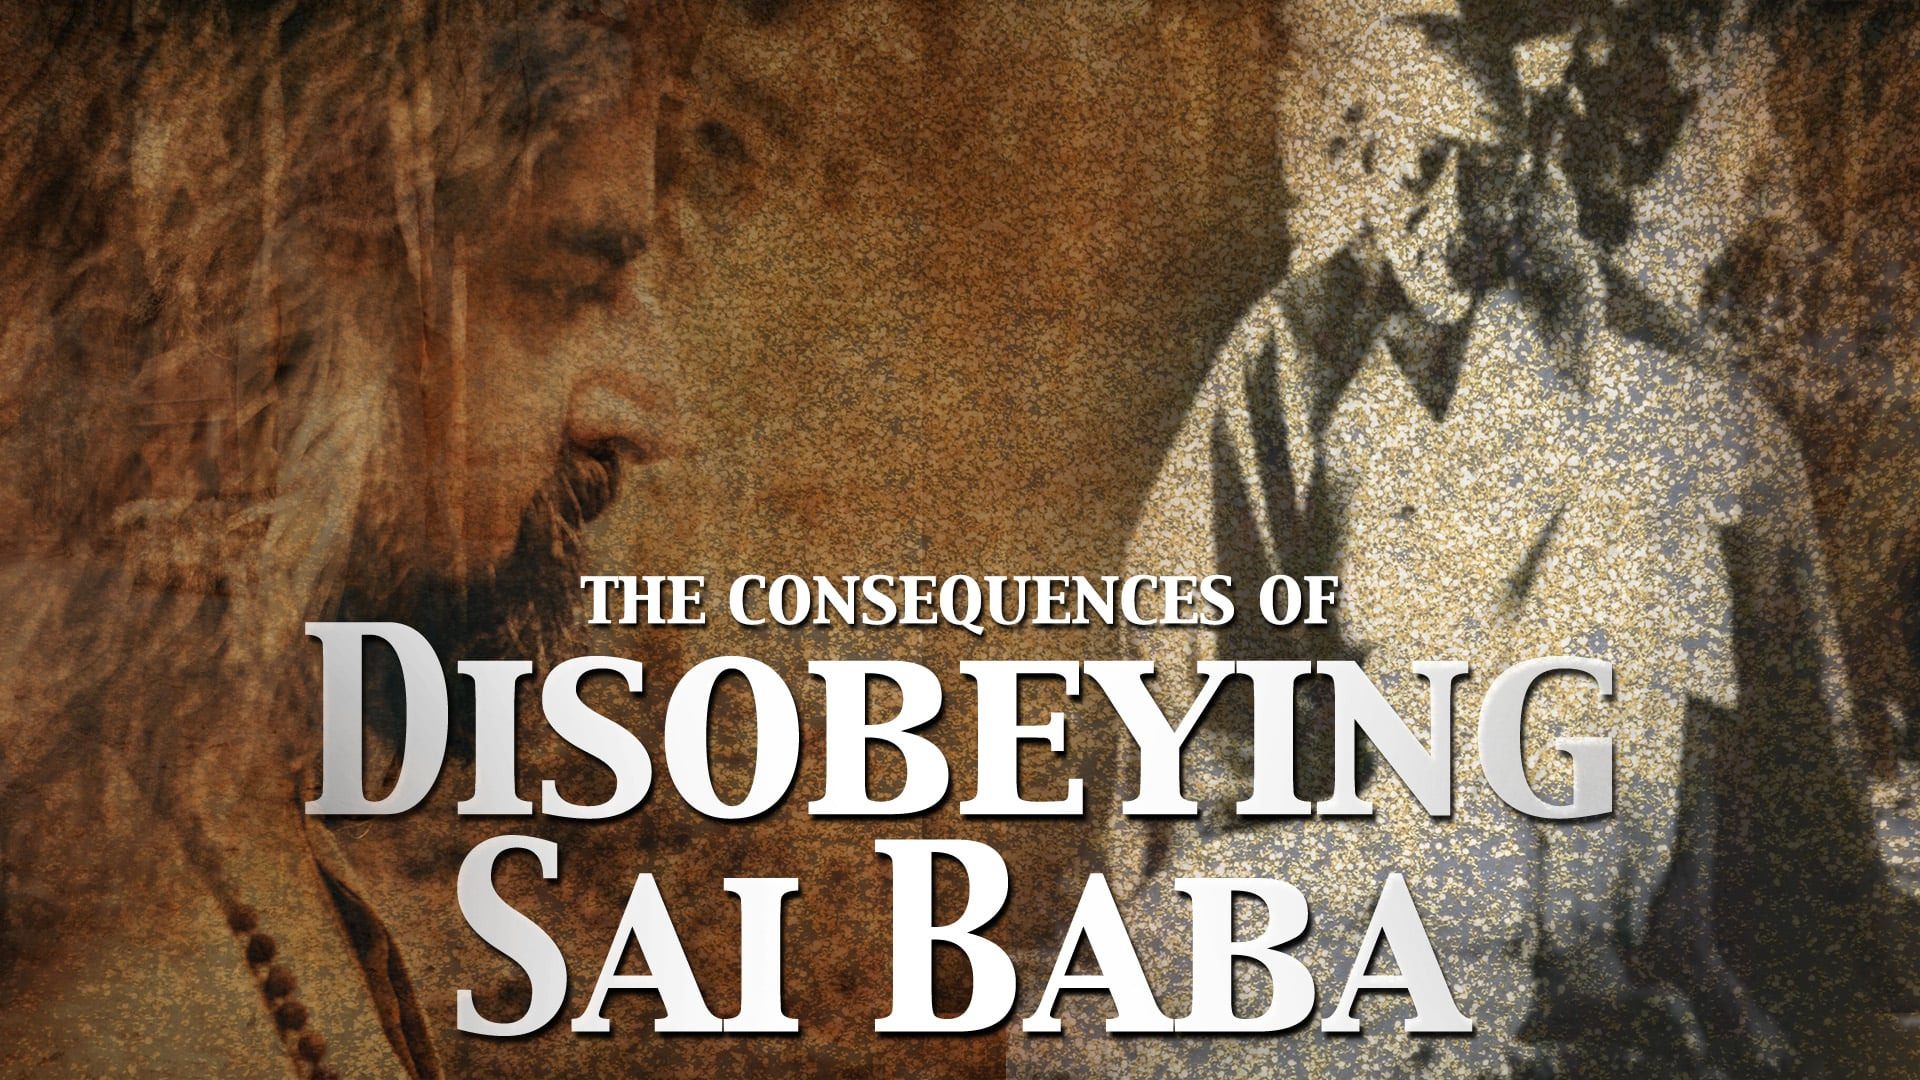 The Consequences of Disobeying Sai Baba